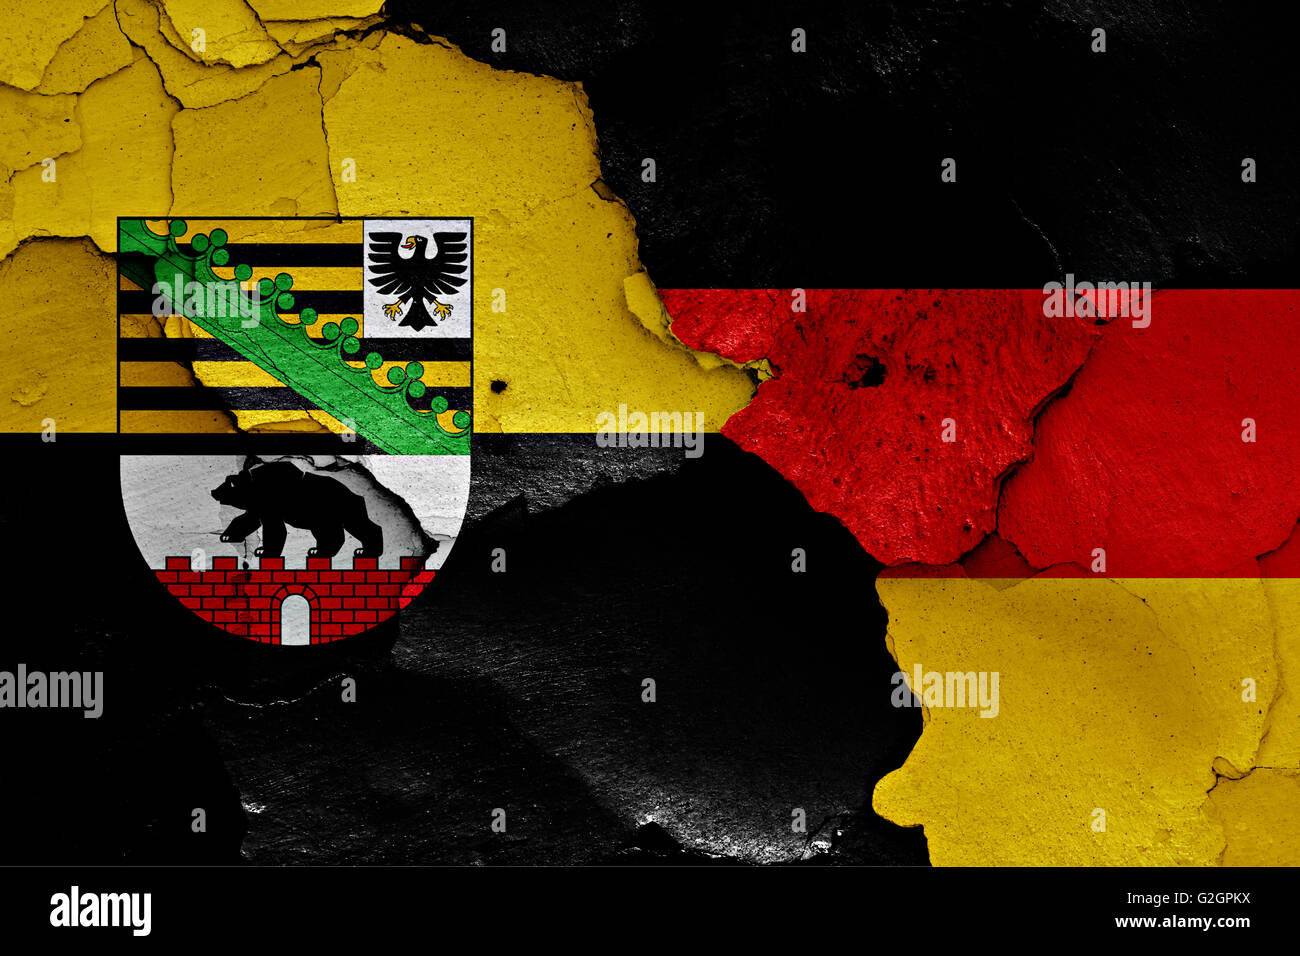 flags of Saxony Anhalt and Germany painted on cracked wall - Stock Image